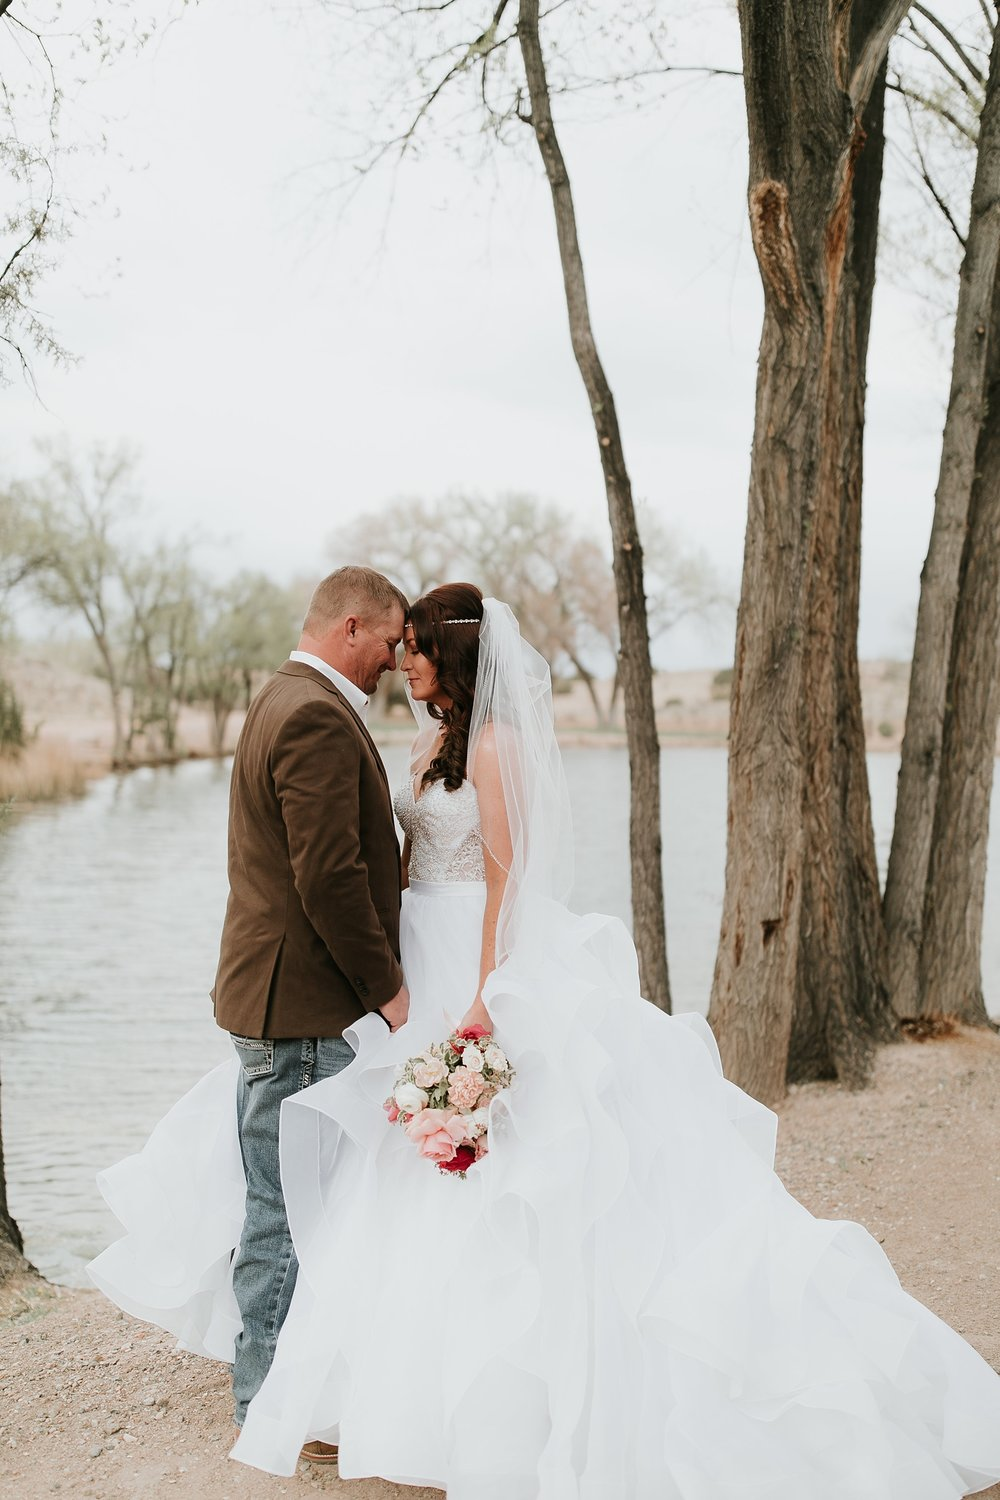 Alicia+lucia+photography+-+albuquerque+wedding+photographer+-+santa+fe+wedding+photography+-+new+mexico+wedding+photographer+-+new+mexico+engagement+-+la+mesita+ranch+wedding+-+la+mesita+ranch+spring+wedding_0057.jpg